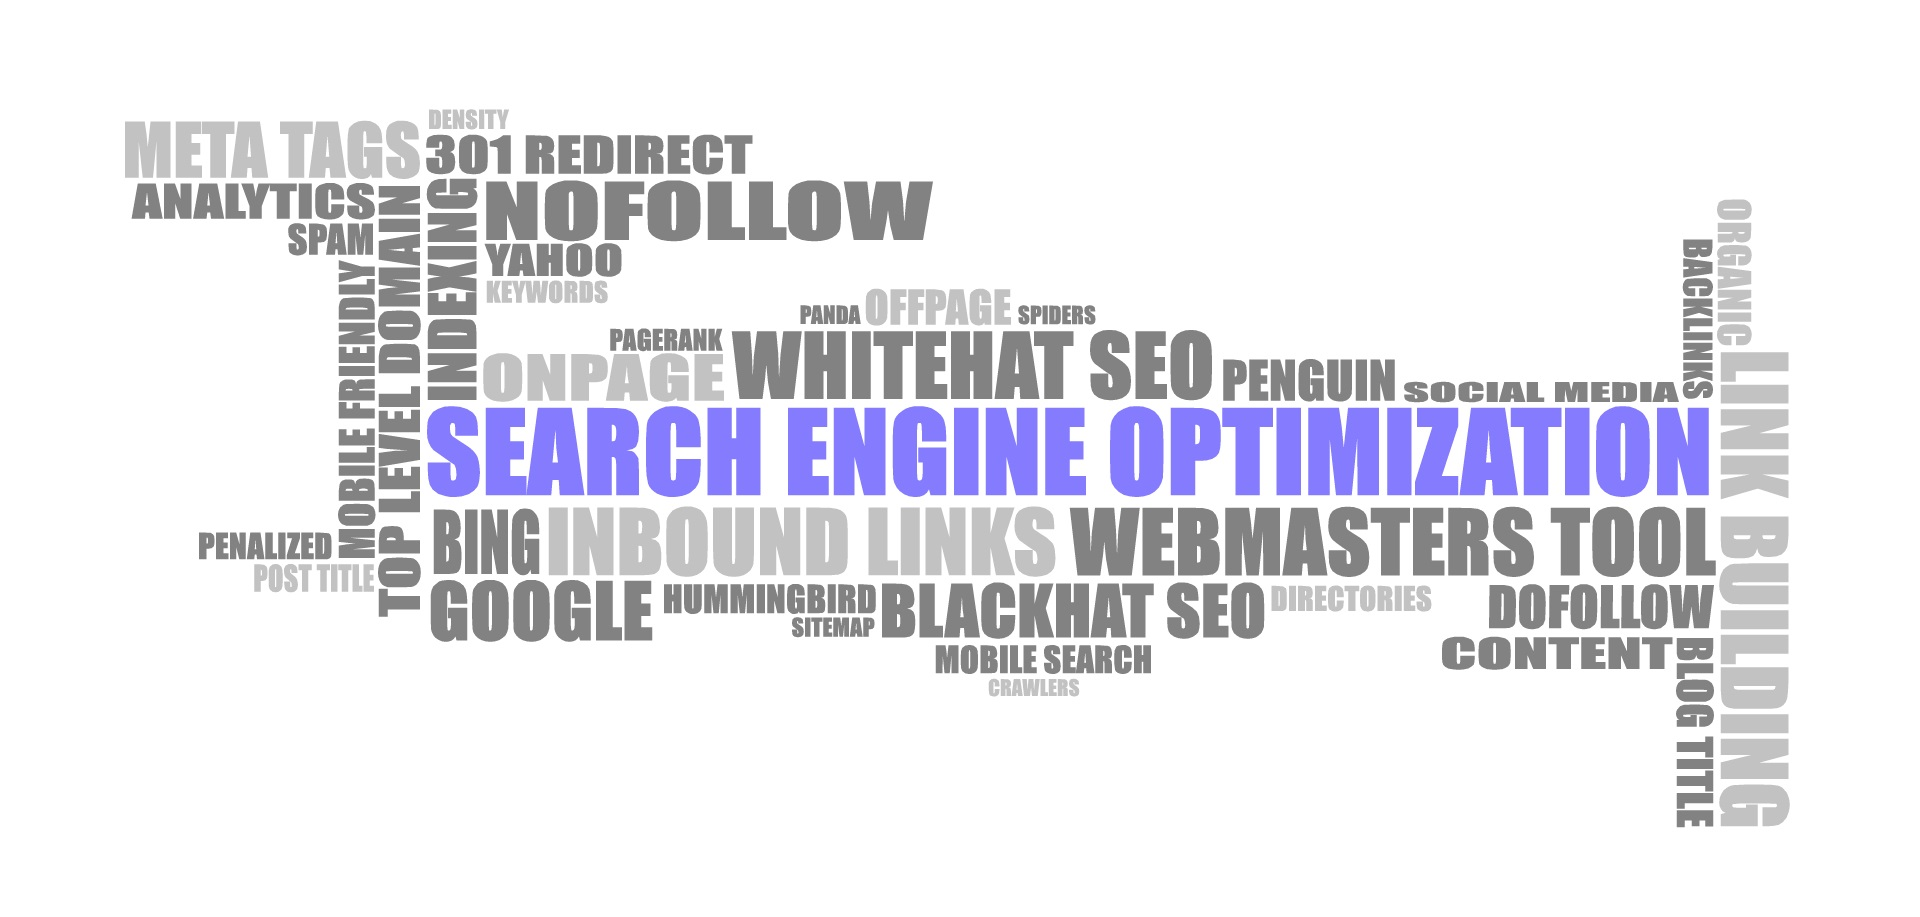 Atlanta's Best Local Search Engine Optimization Company: https://goo.gl/1xKNwu